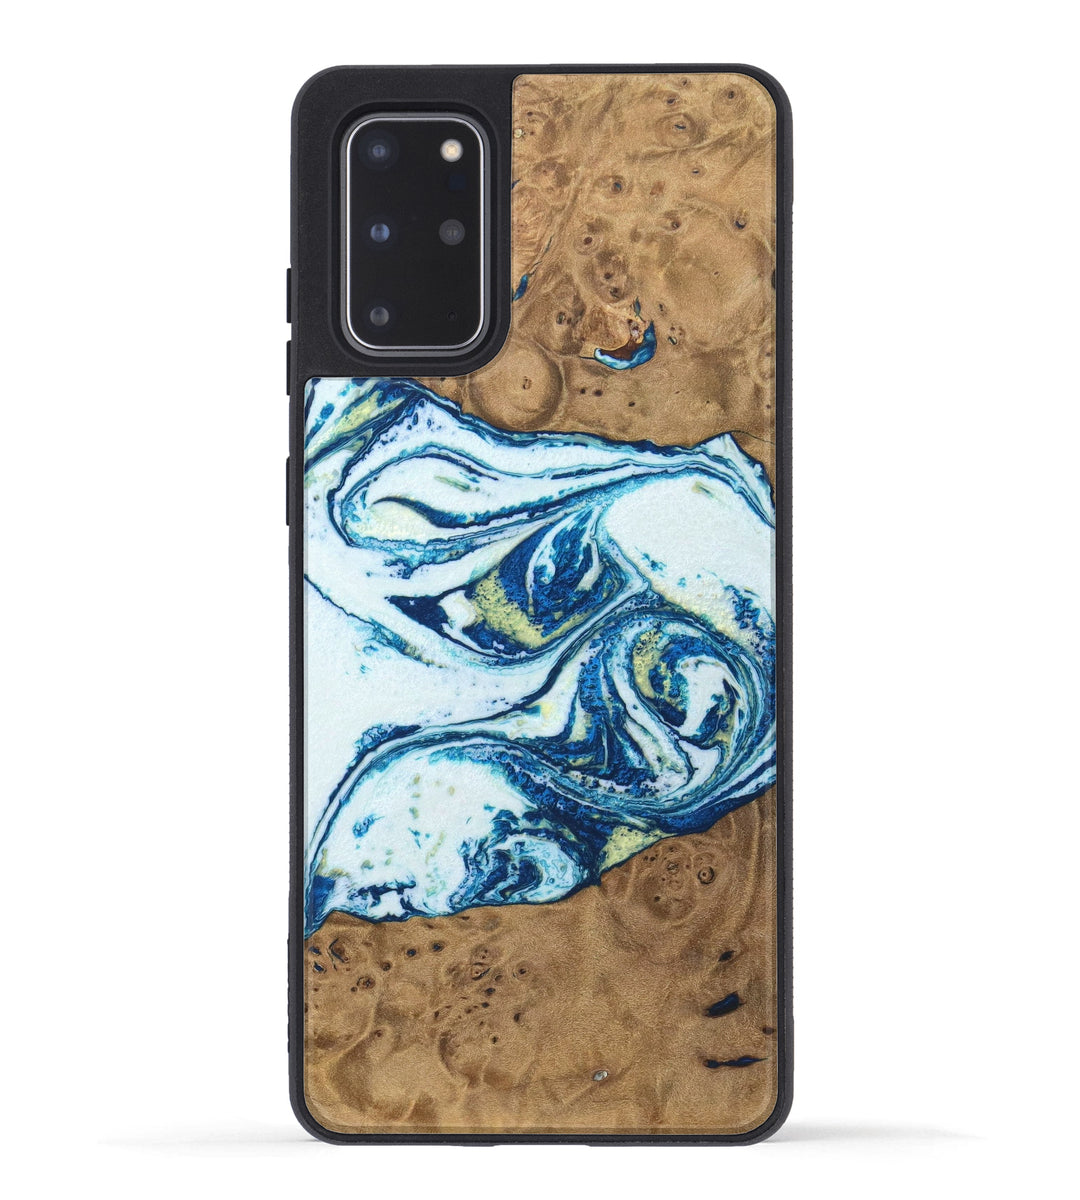 Galaxy S20 Plus Wood+Resin Case - Kerstin (Dark Blue, 333977)